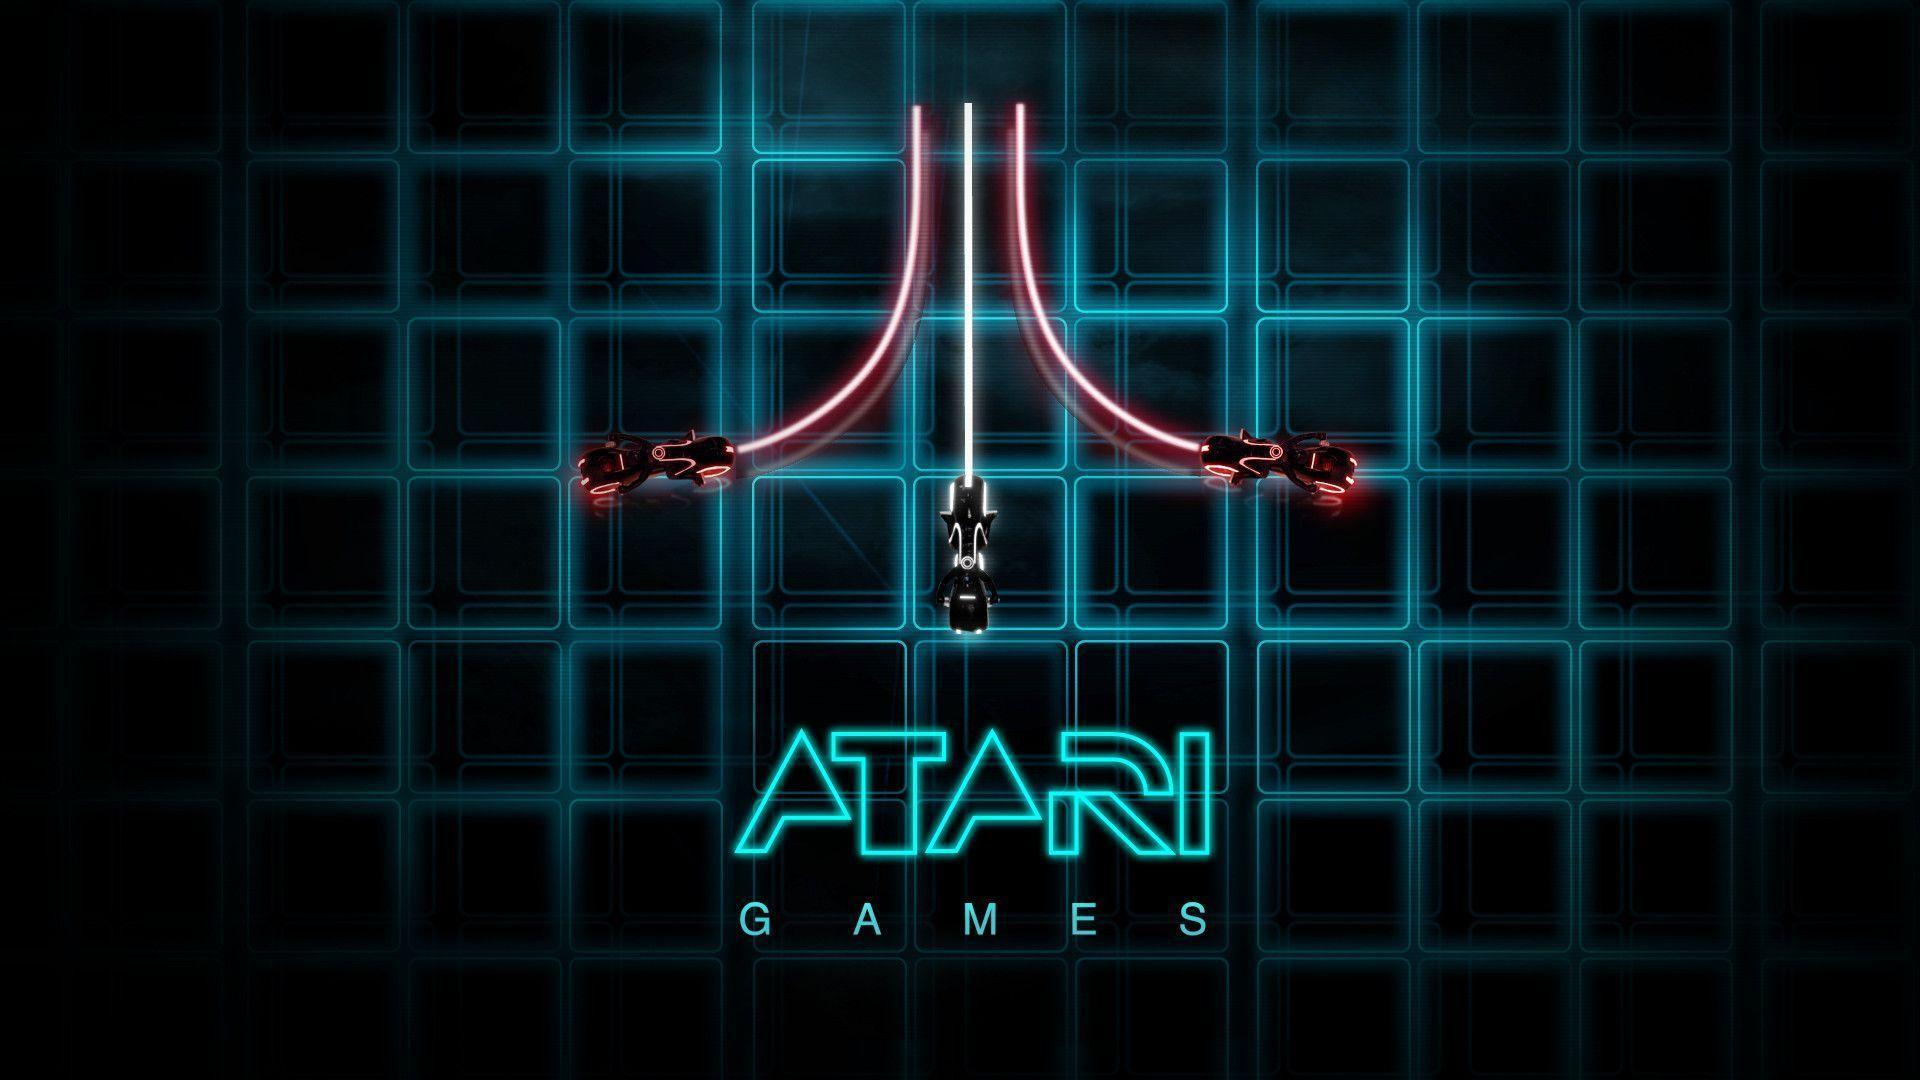 EA Atari and tron Wallpaper 1920x1080 | Hot HD Wallpaper